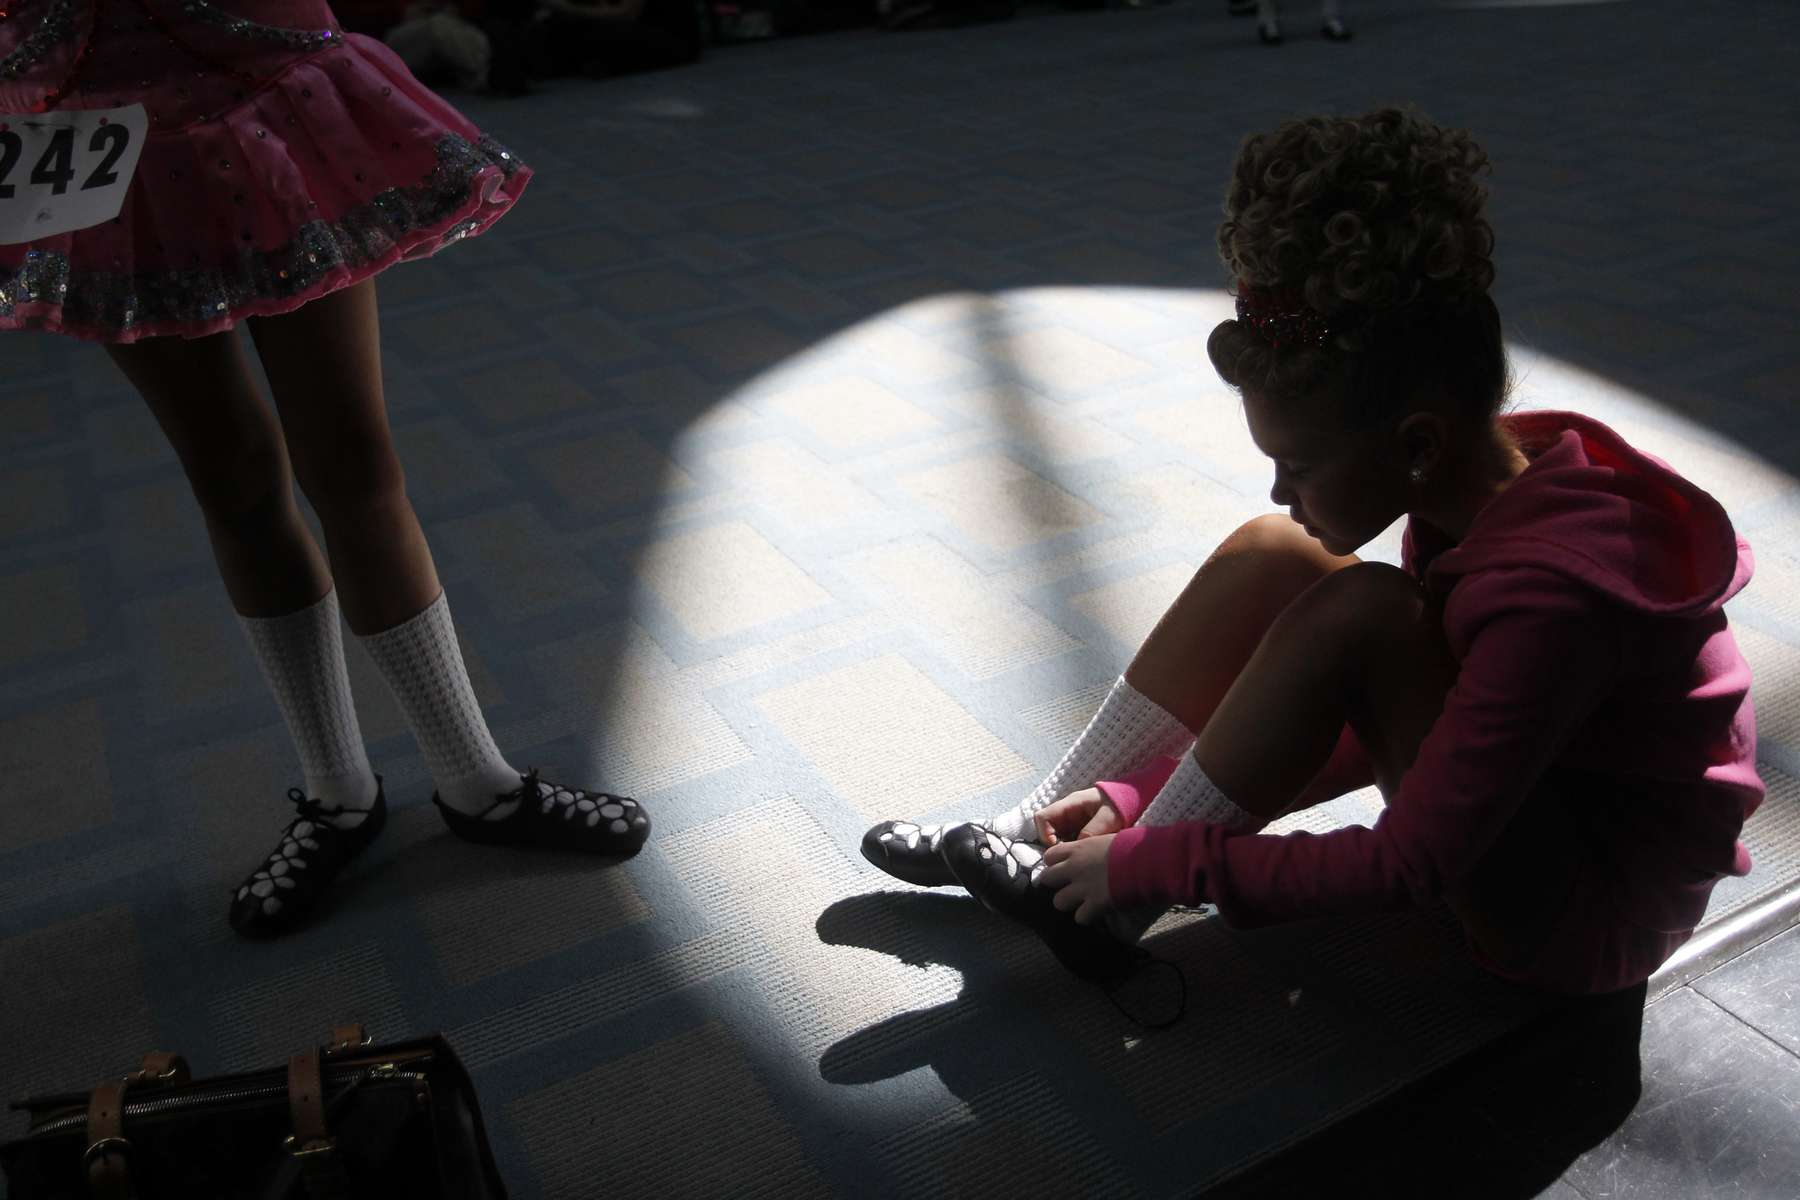 A competitor laces up her shoes in the hallway before competing in the World Irish Dancing Championships in Boston, Massachusetts March 24, 2013.